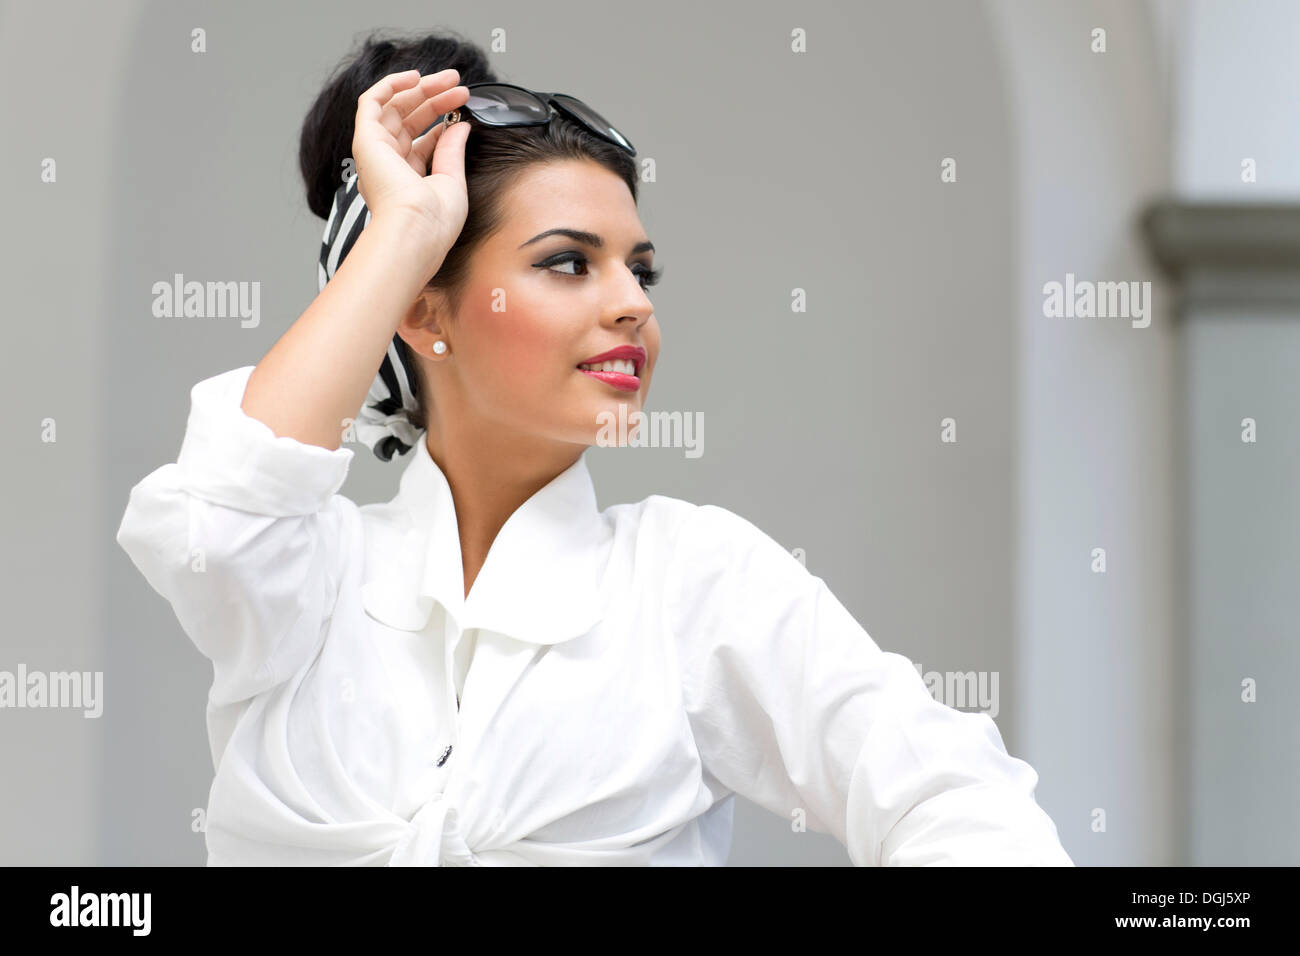 91b6a3206 Young woman with an updo hairstyle wearing sunglasses and a white shirt